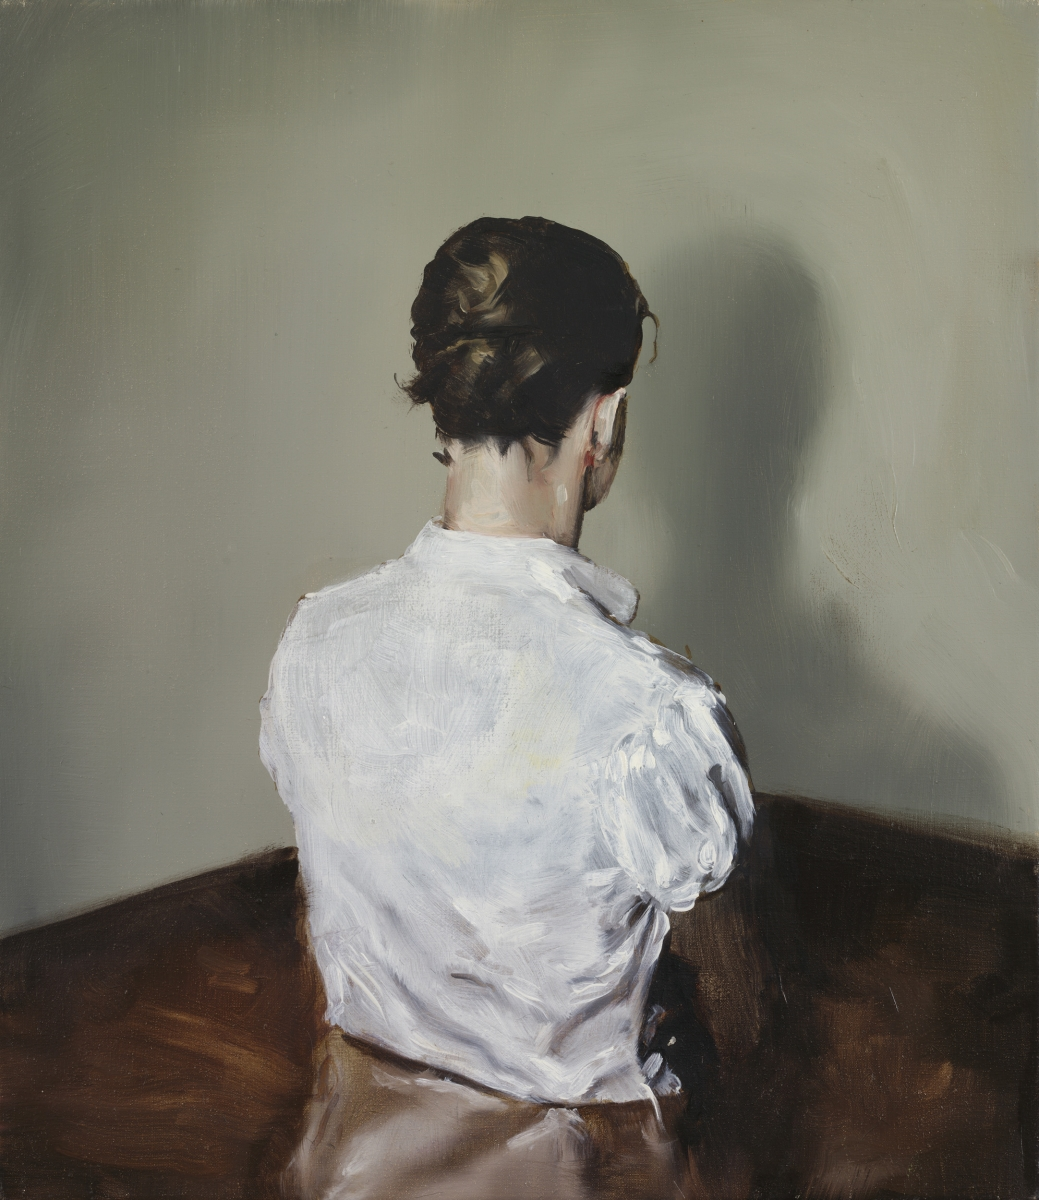 Michaël Borremans, A2, 2004.